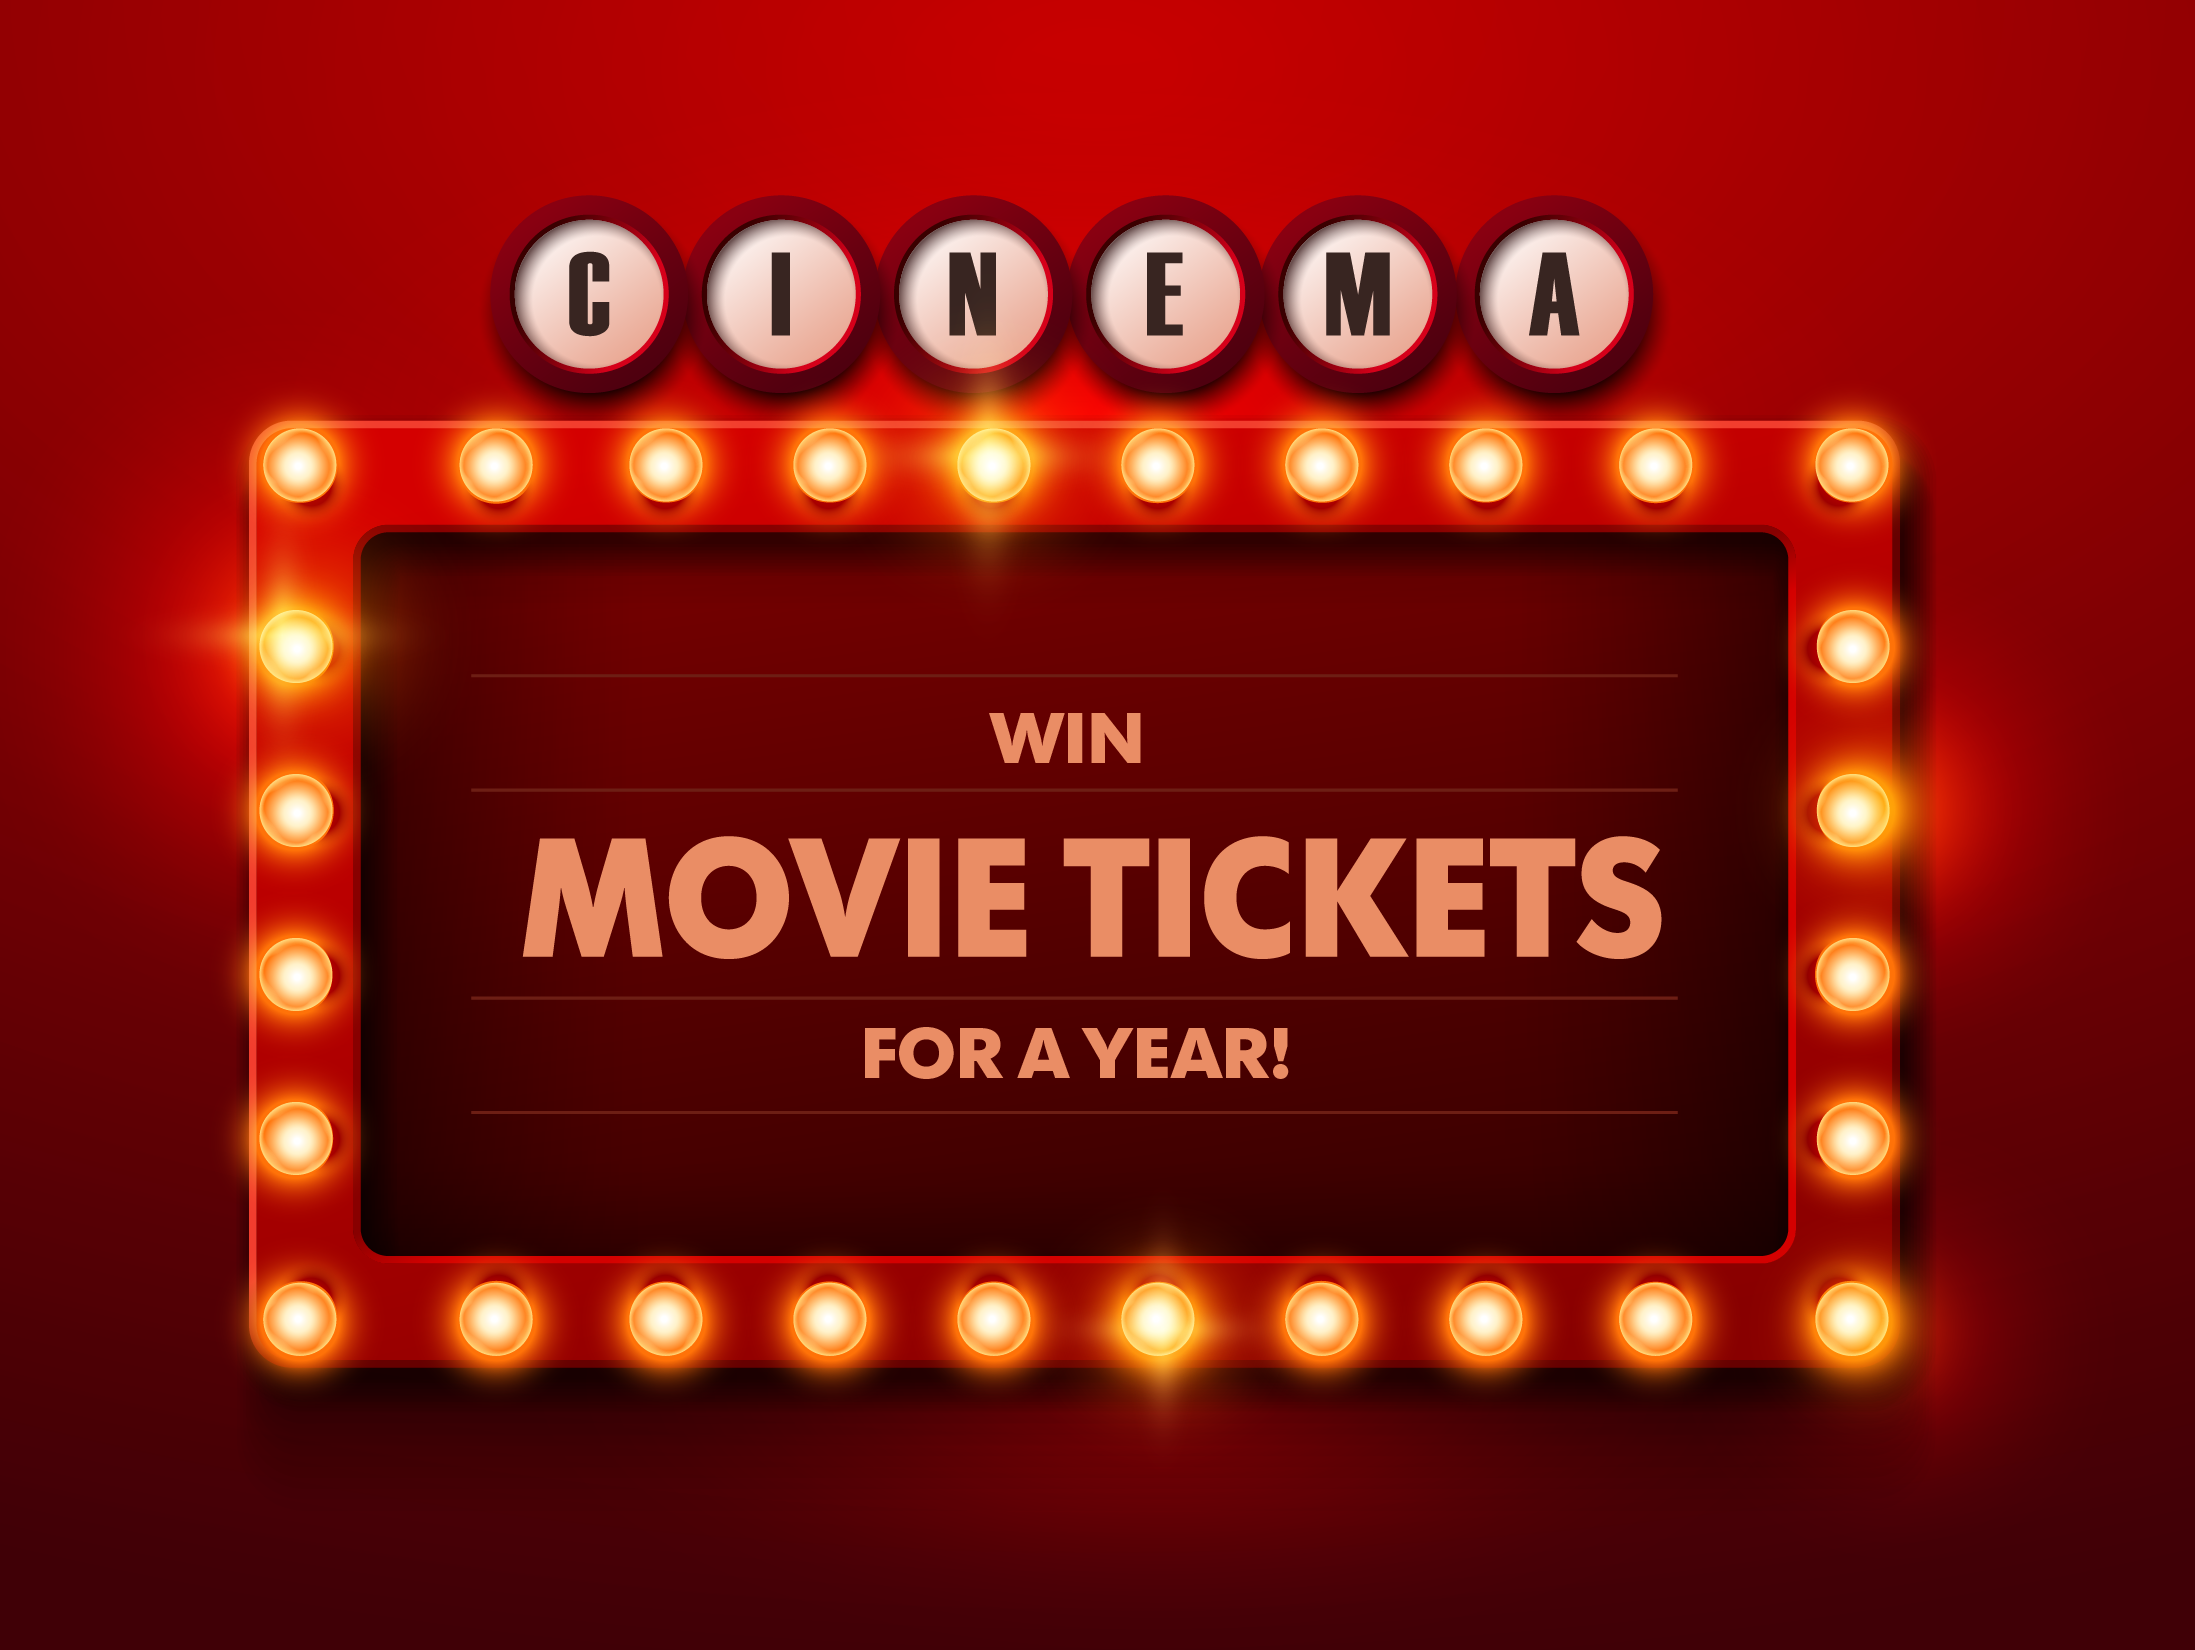 Enjoy dinner and a movie every month for the year! Enter to win this sweet datenight package. 1/30-2/25